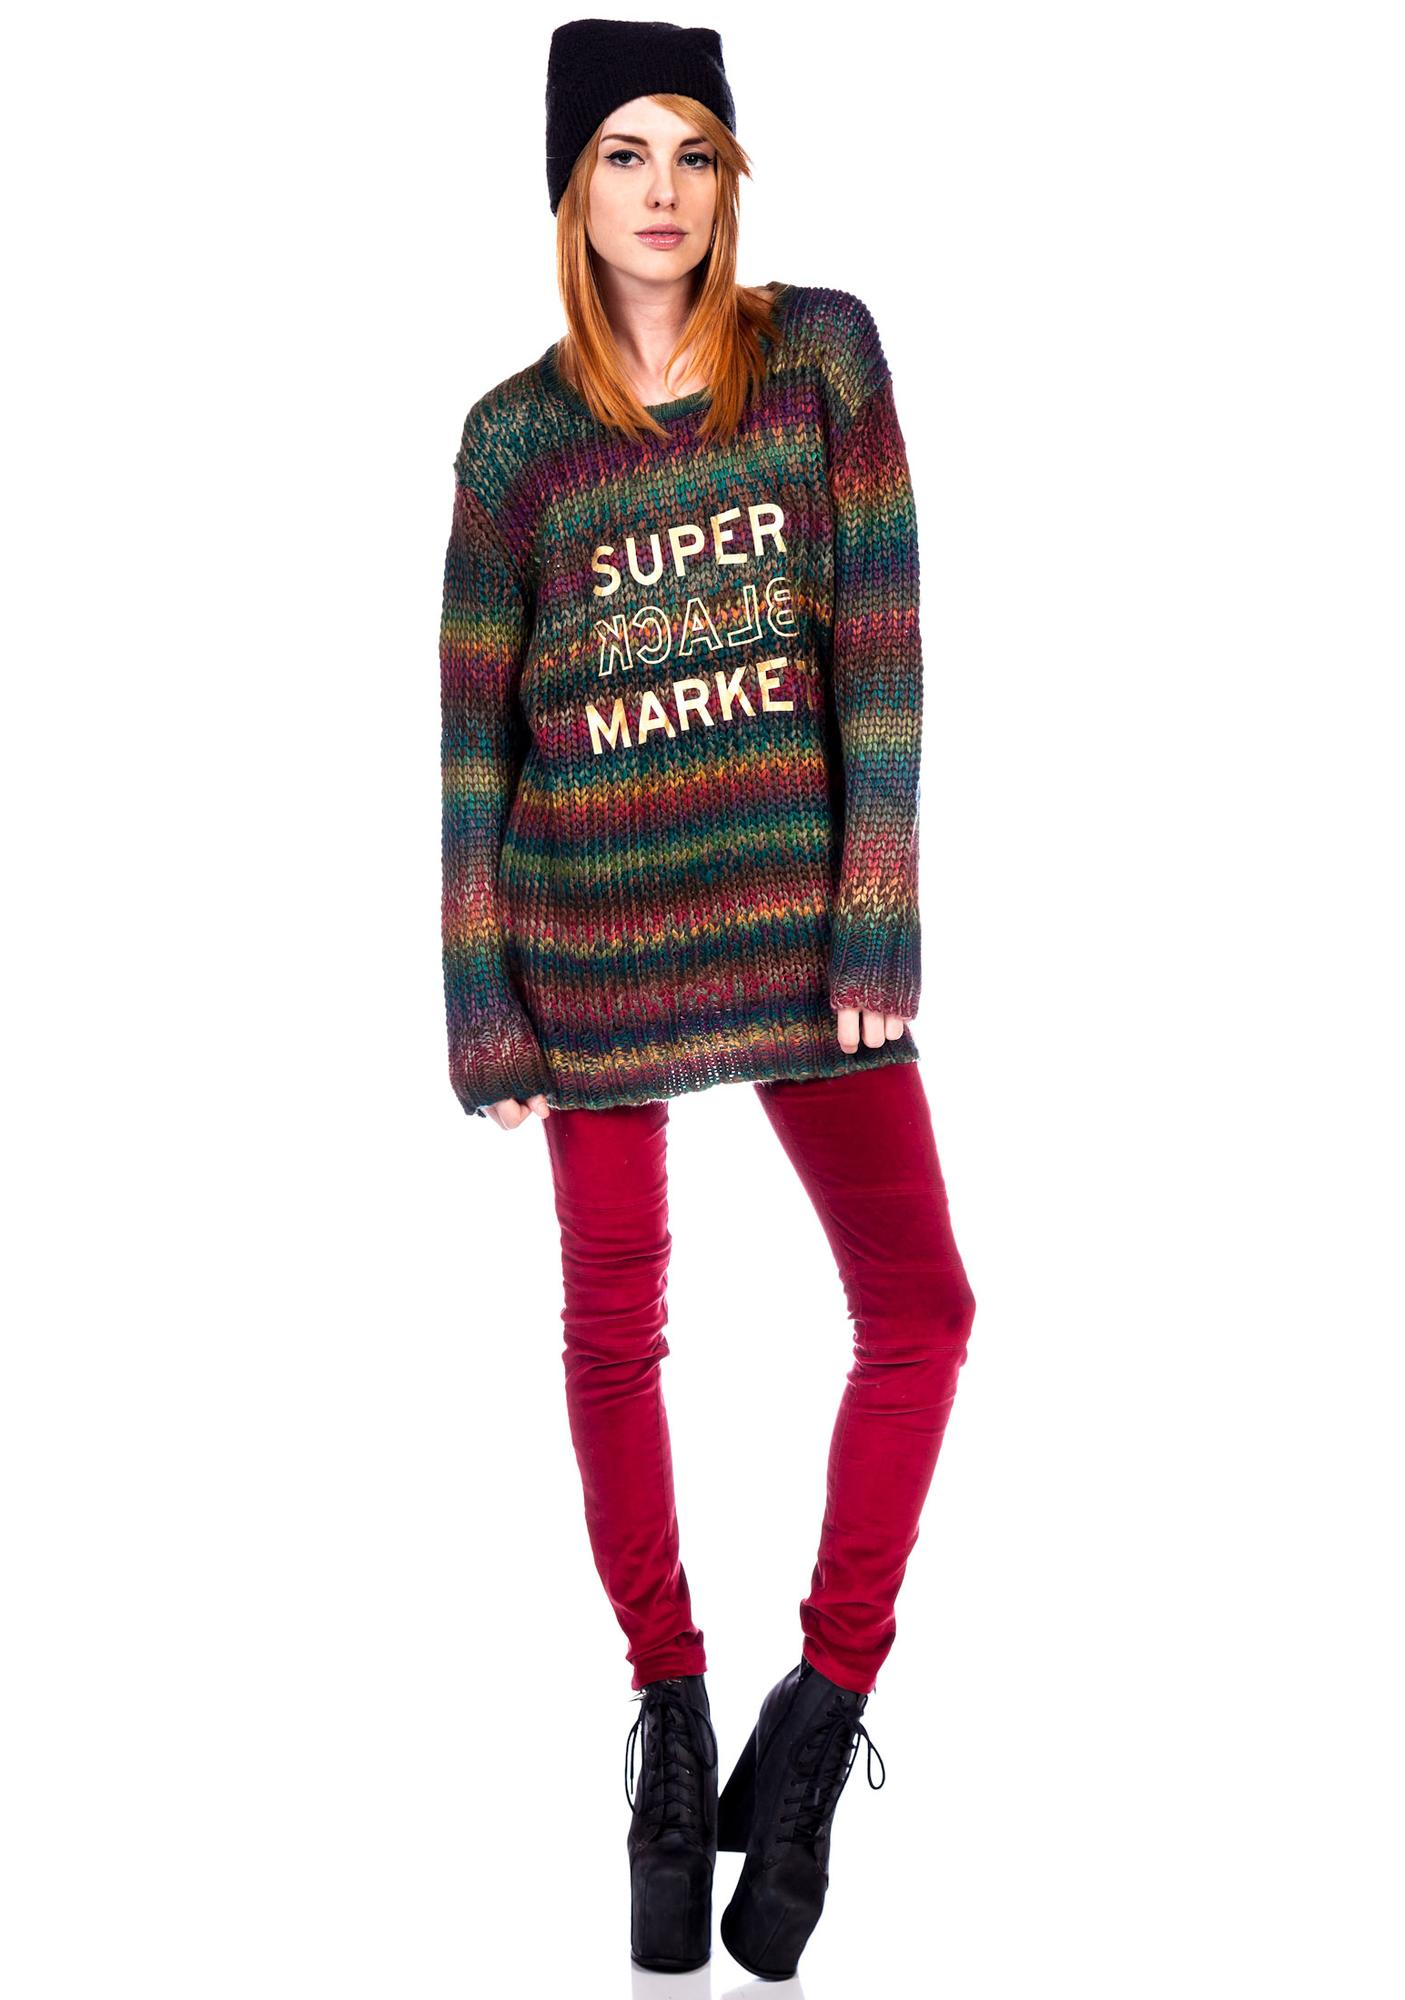 Halfman Romantics Rainbow Knit Crew Sweater